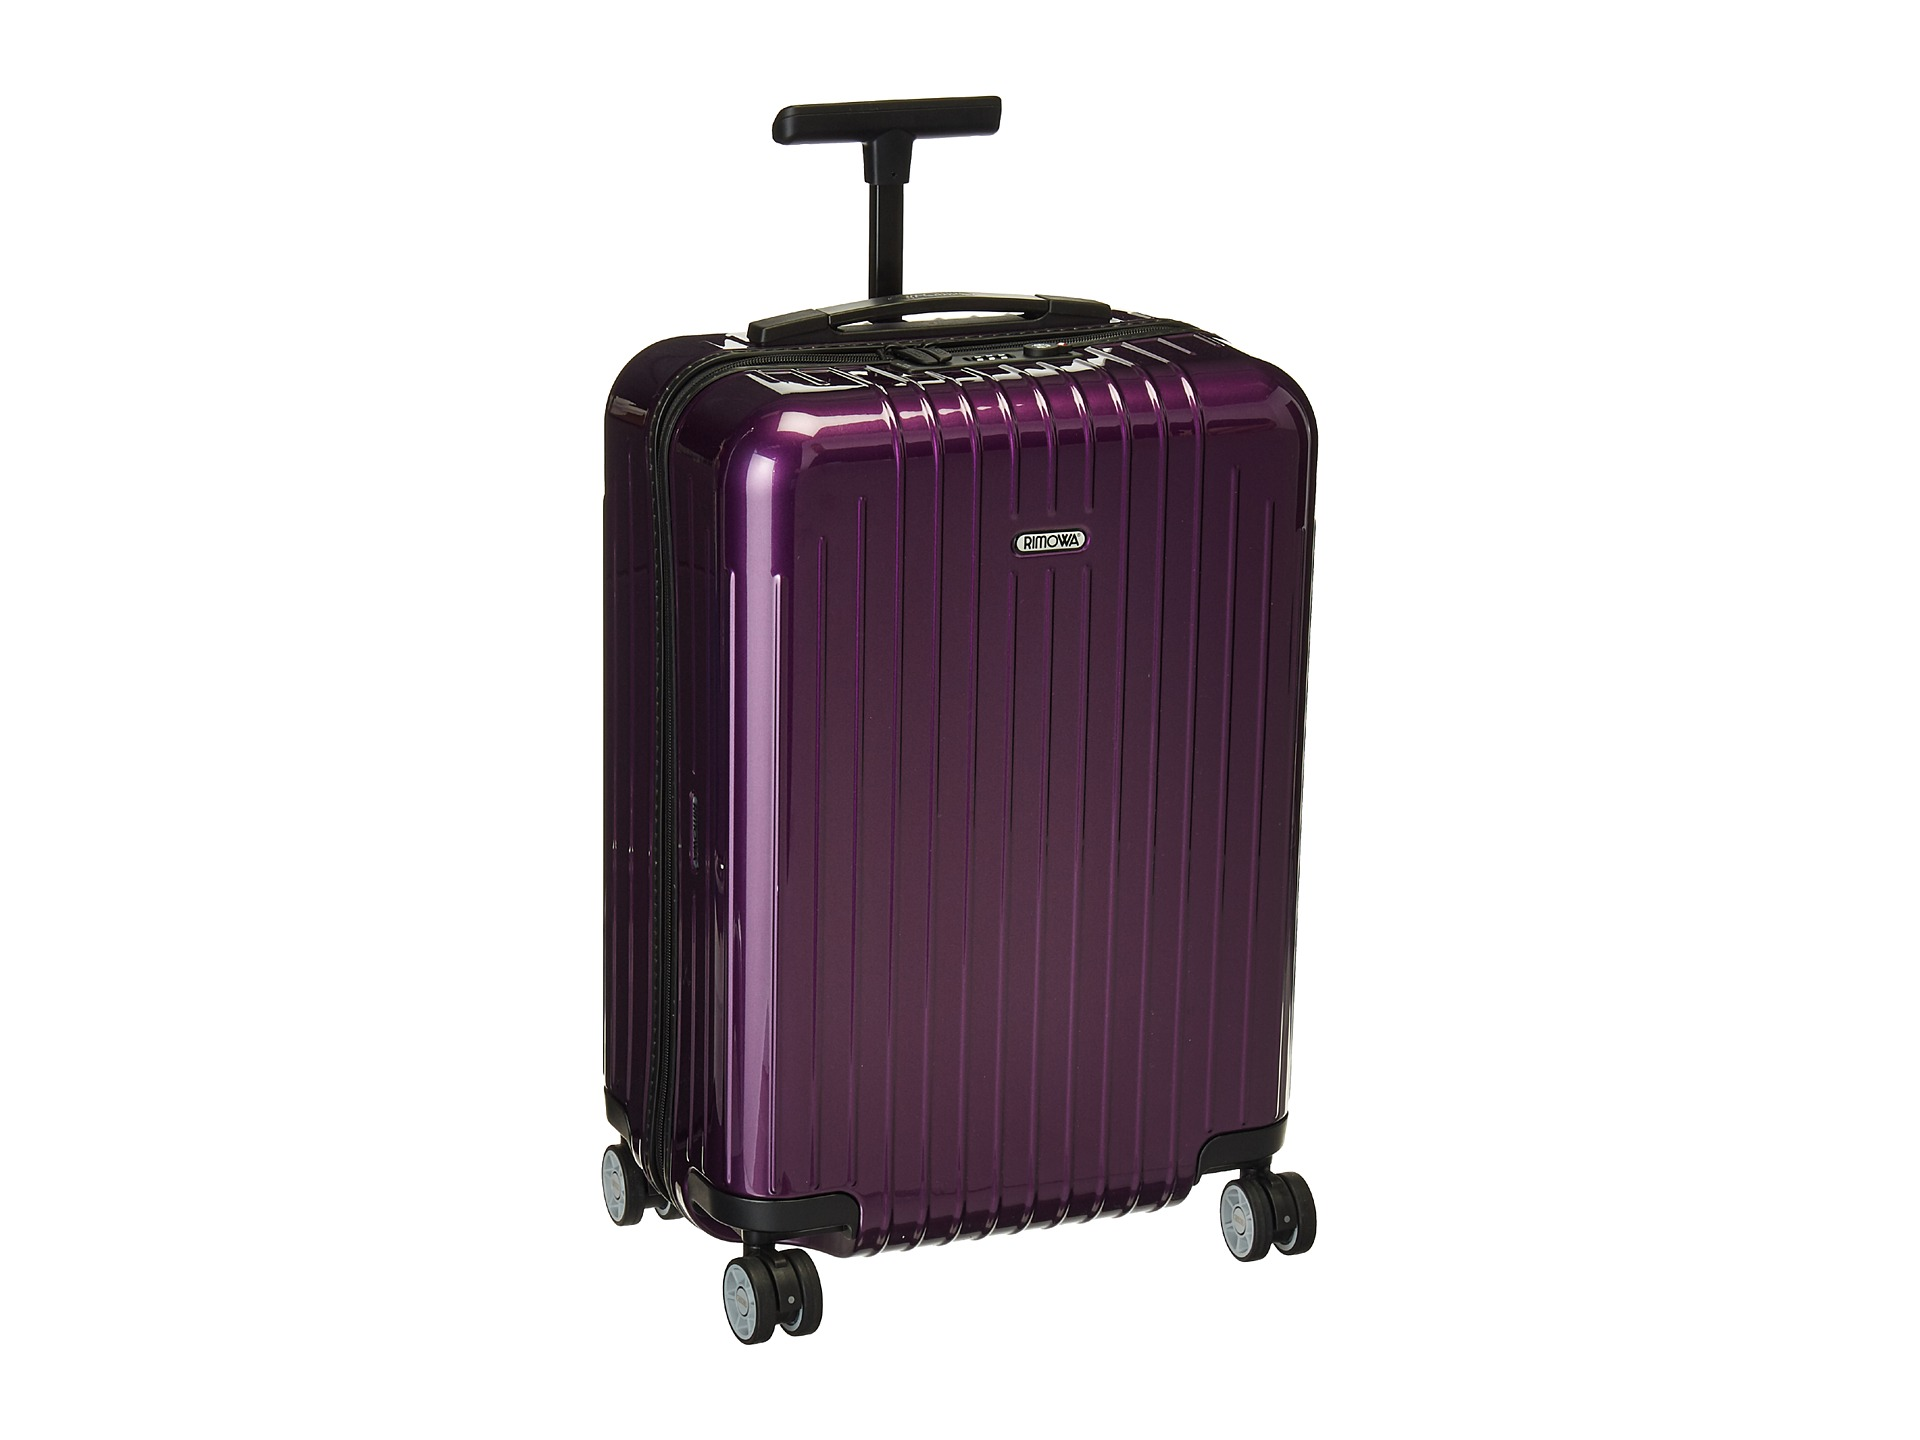 rimowa salsa air cabin multiwheel 53cm at. Black Bedroom Furniture Sets. Home Design Ideas